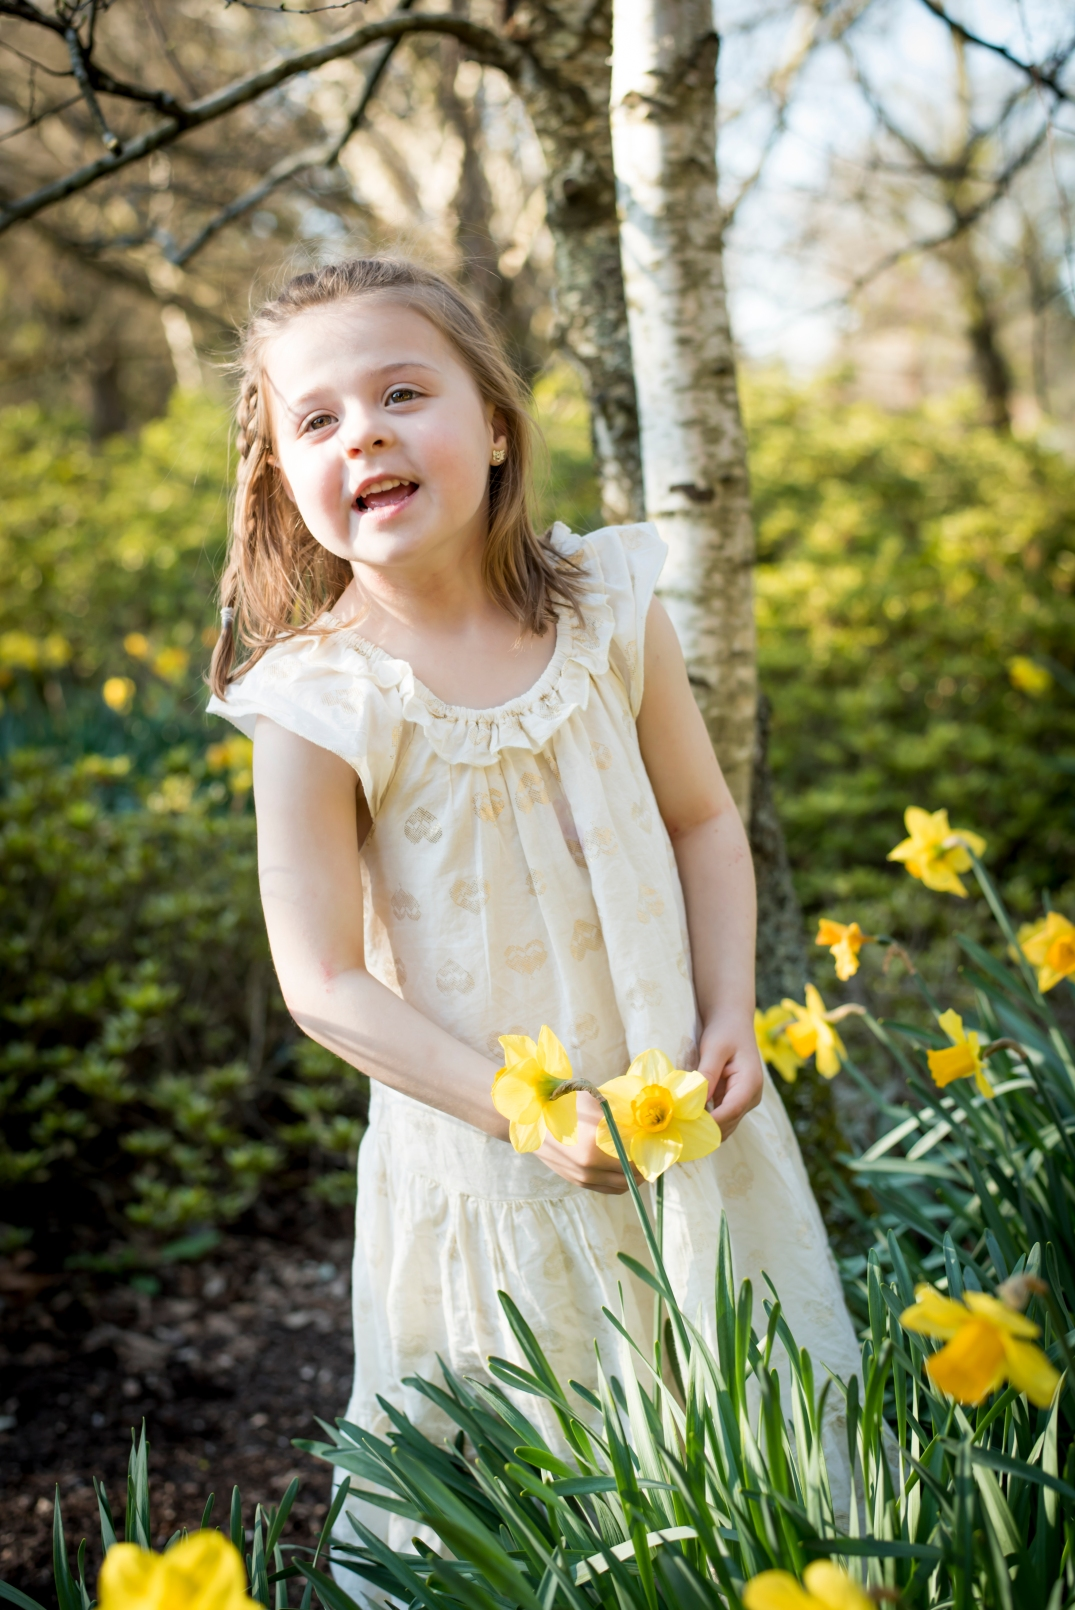 Daffodile natural children's portrait.